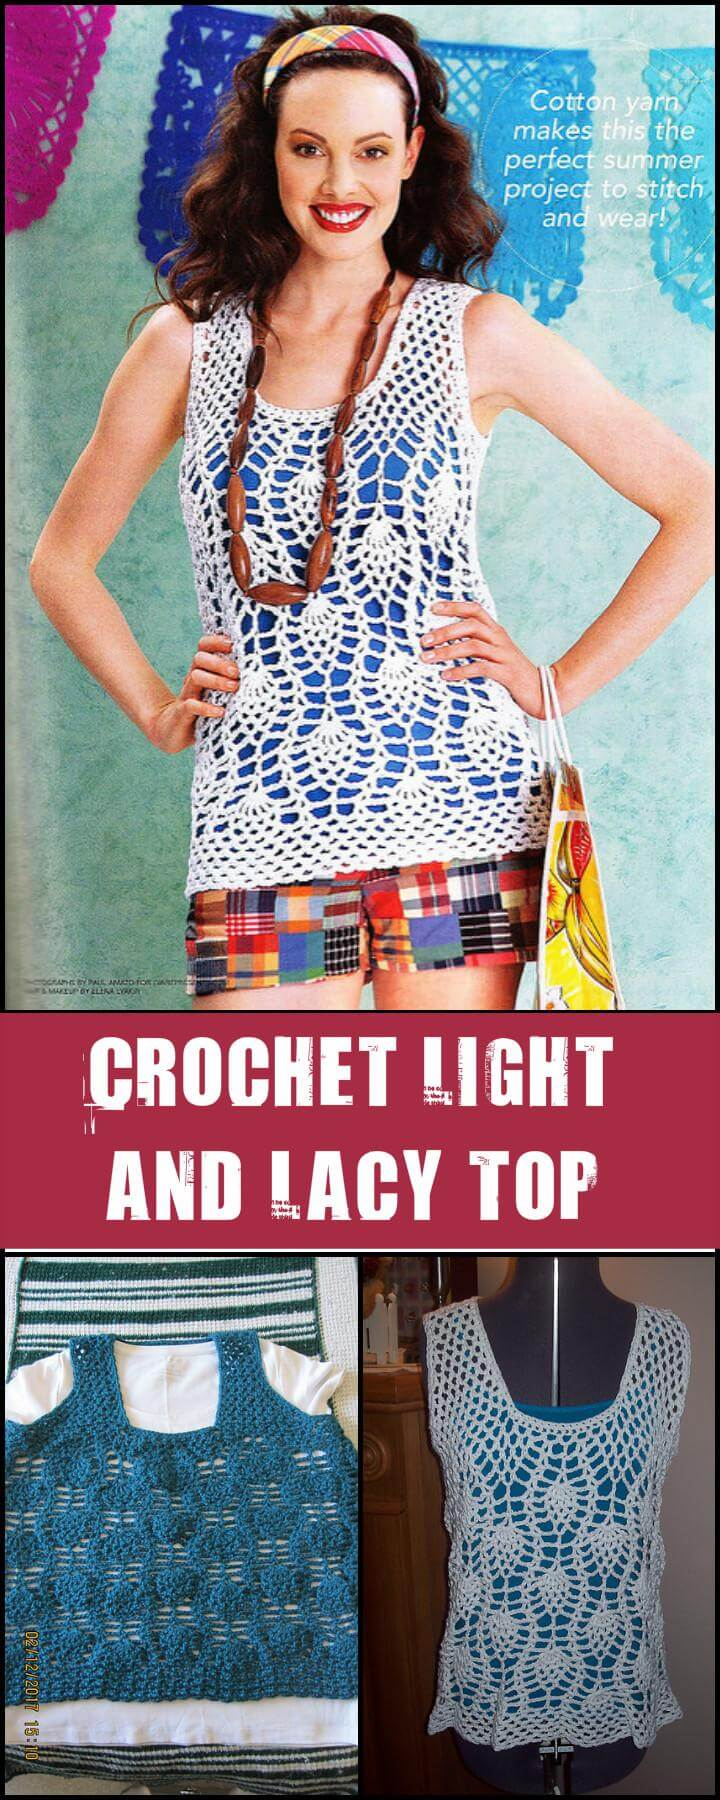 Crochet Light and Lacy Top